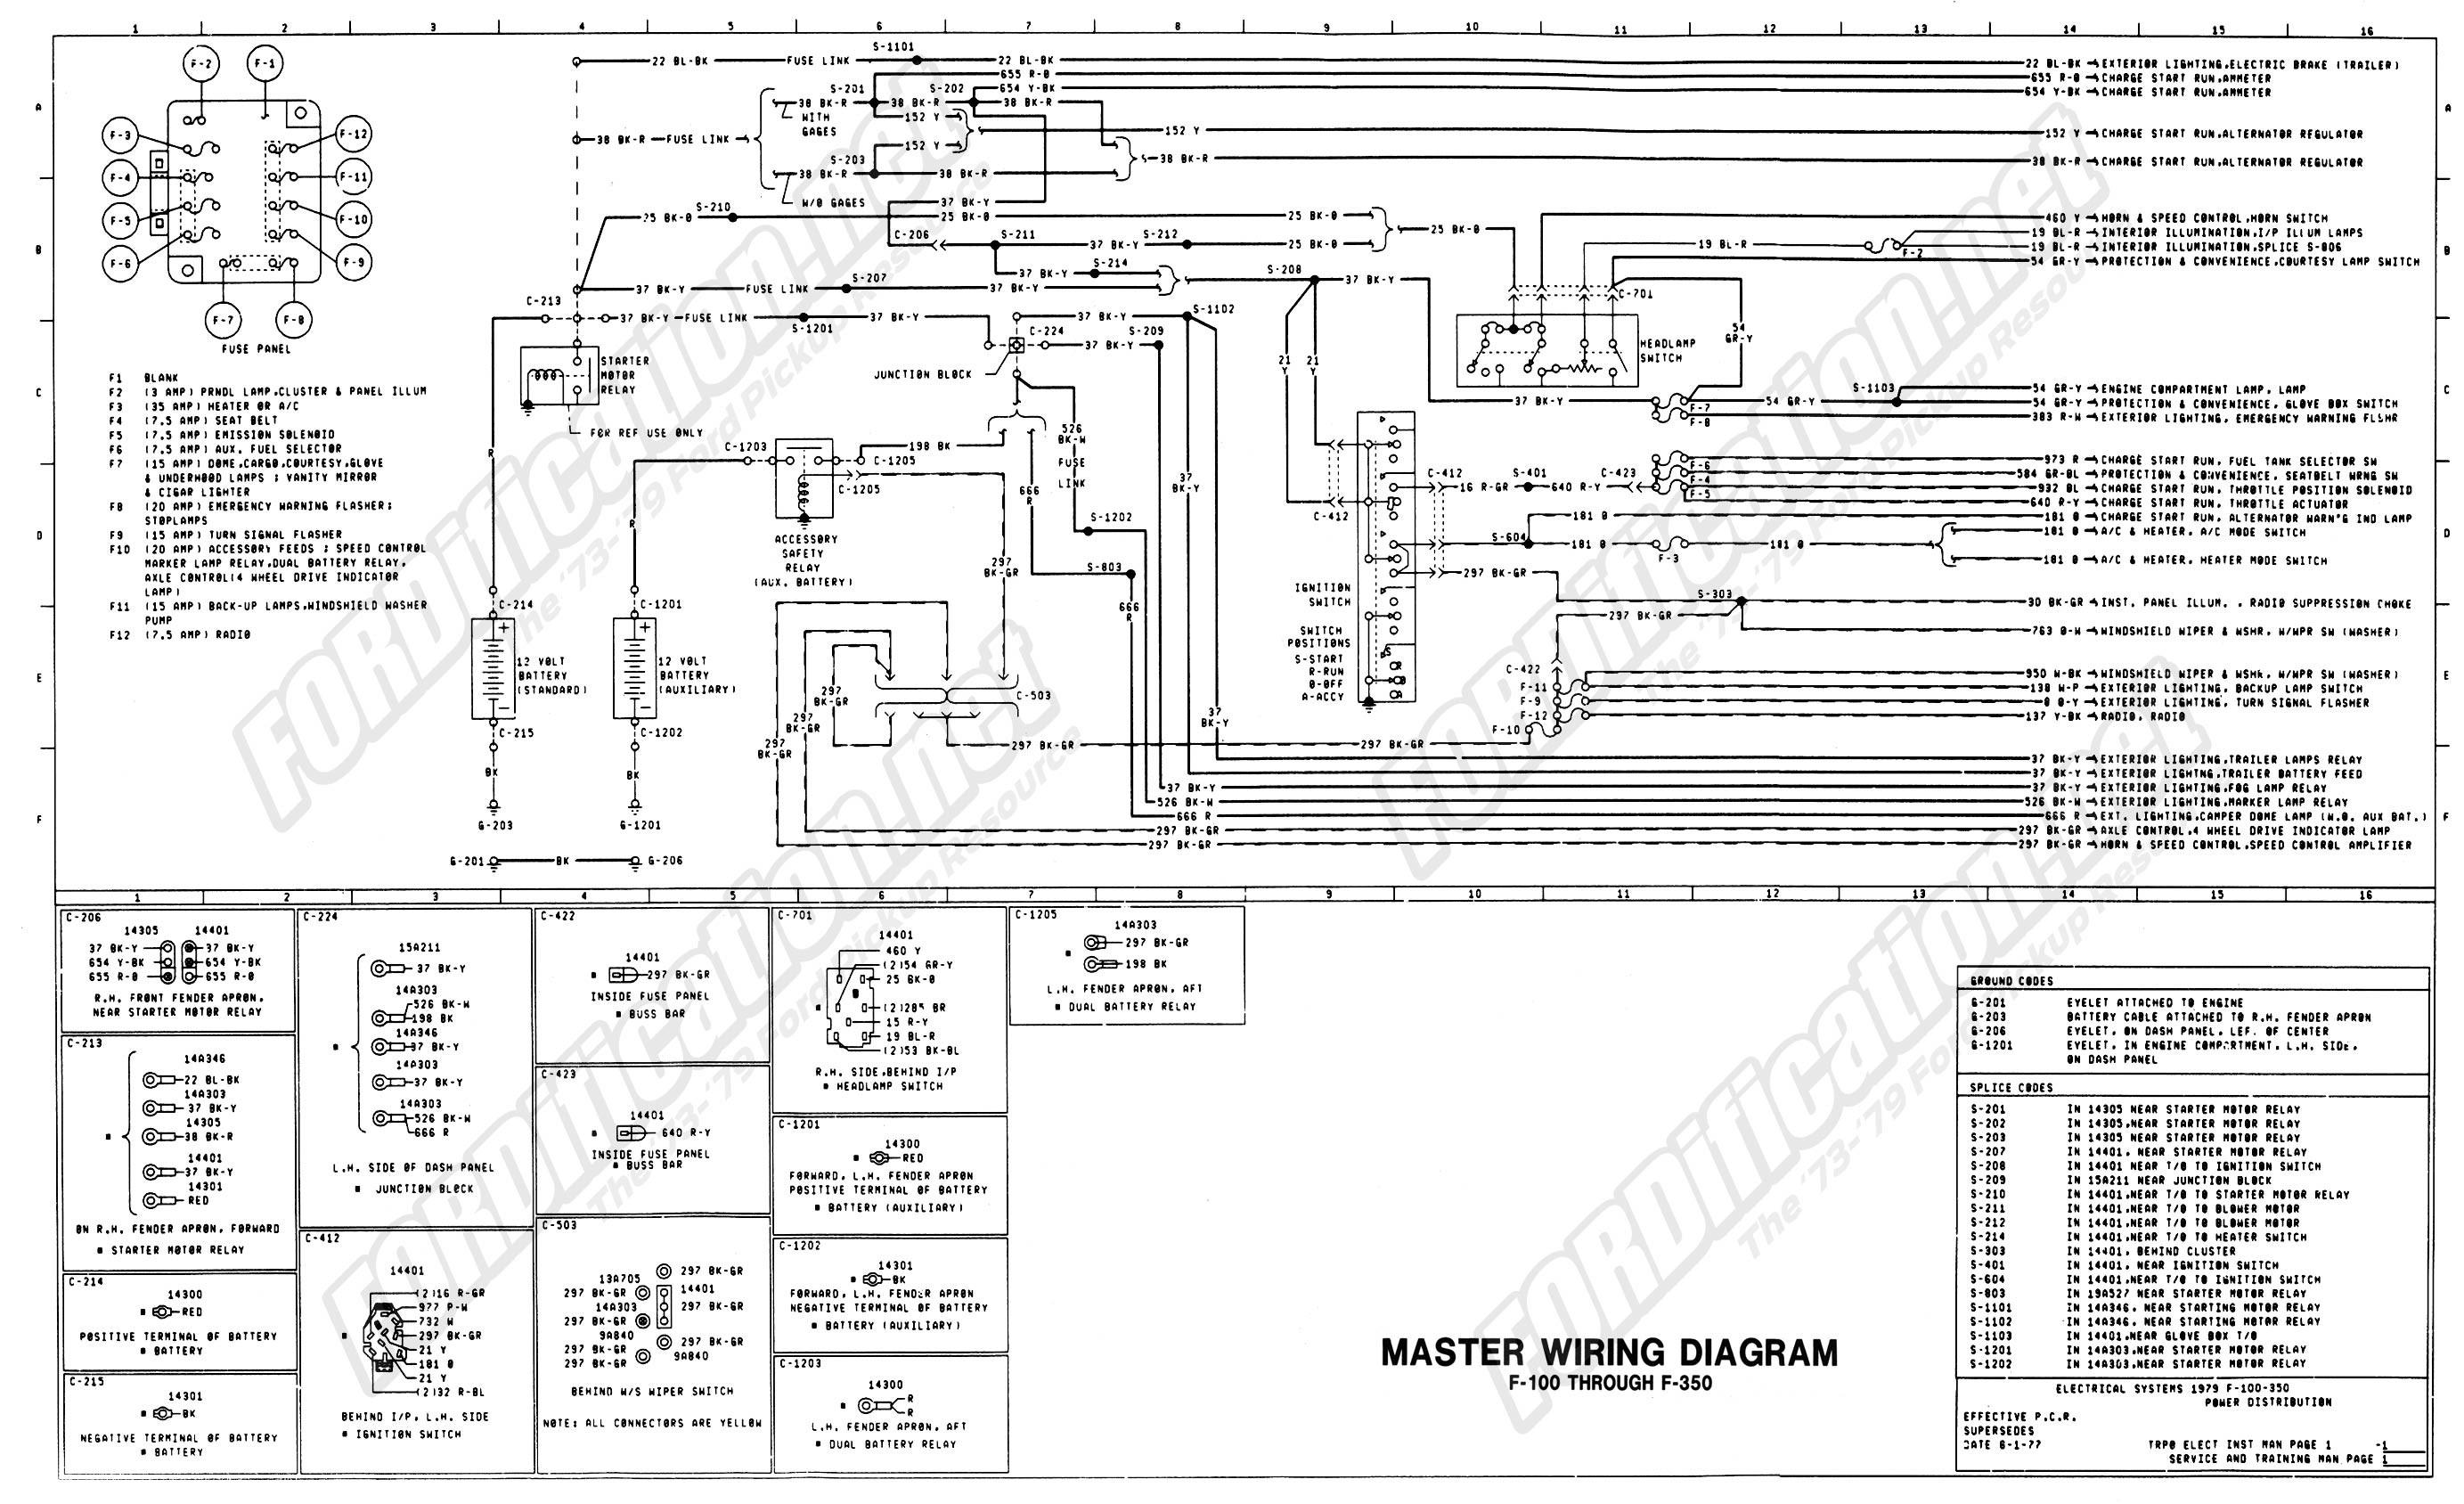 Wiring Diagram for 2000 ford F250 Taillights 1973 1979 ford Truck Wiring Diagrams & Schematics Of Wiring Diagram for 2000 ford F250 Taillights